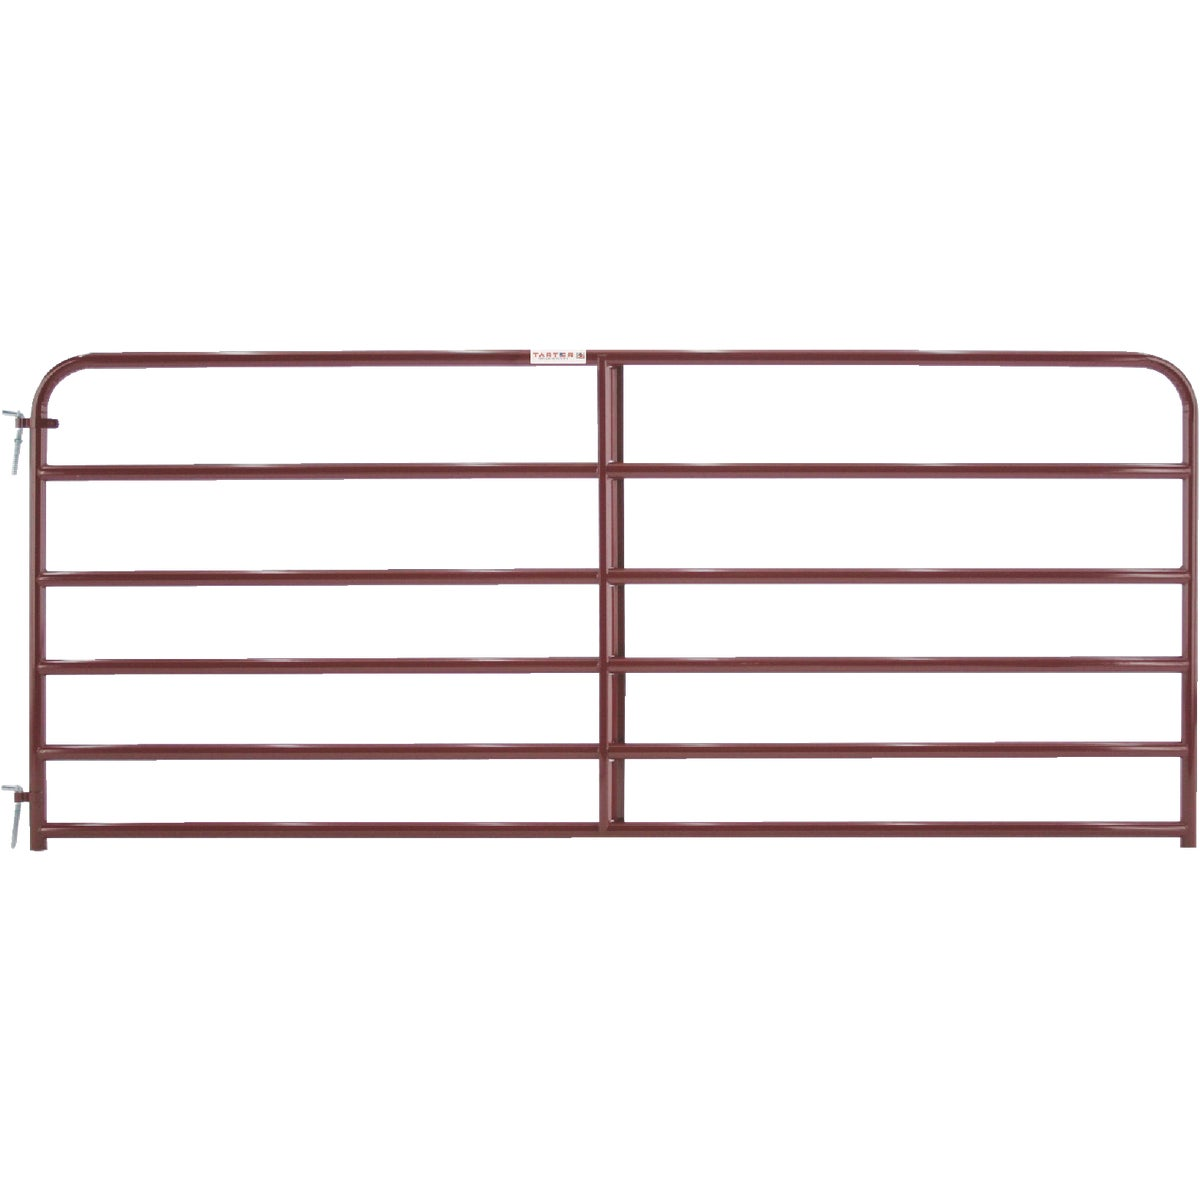 10' 6BAR RED ECONO GATE